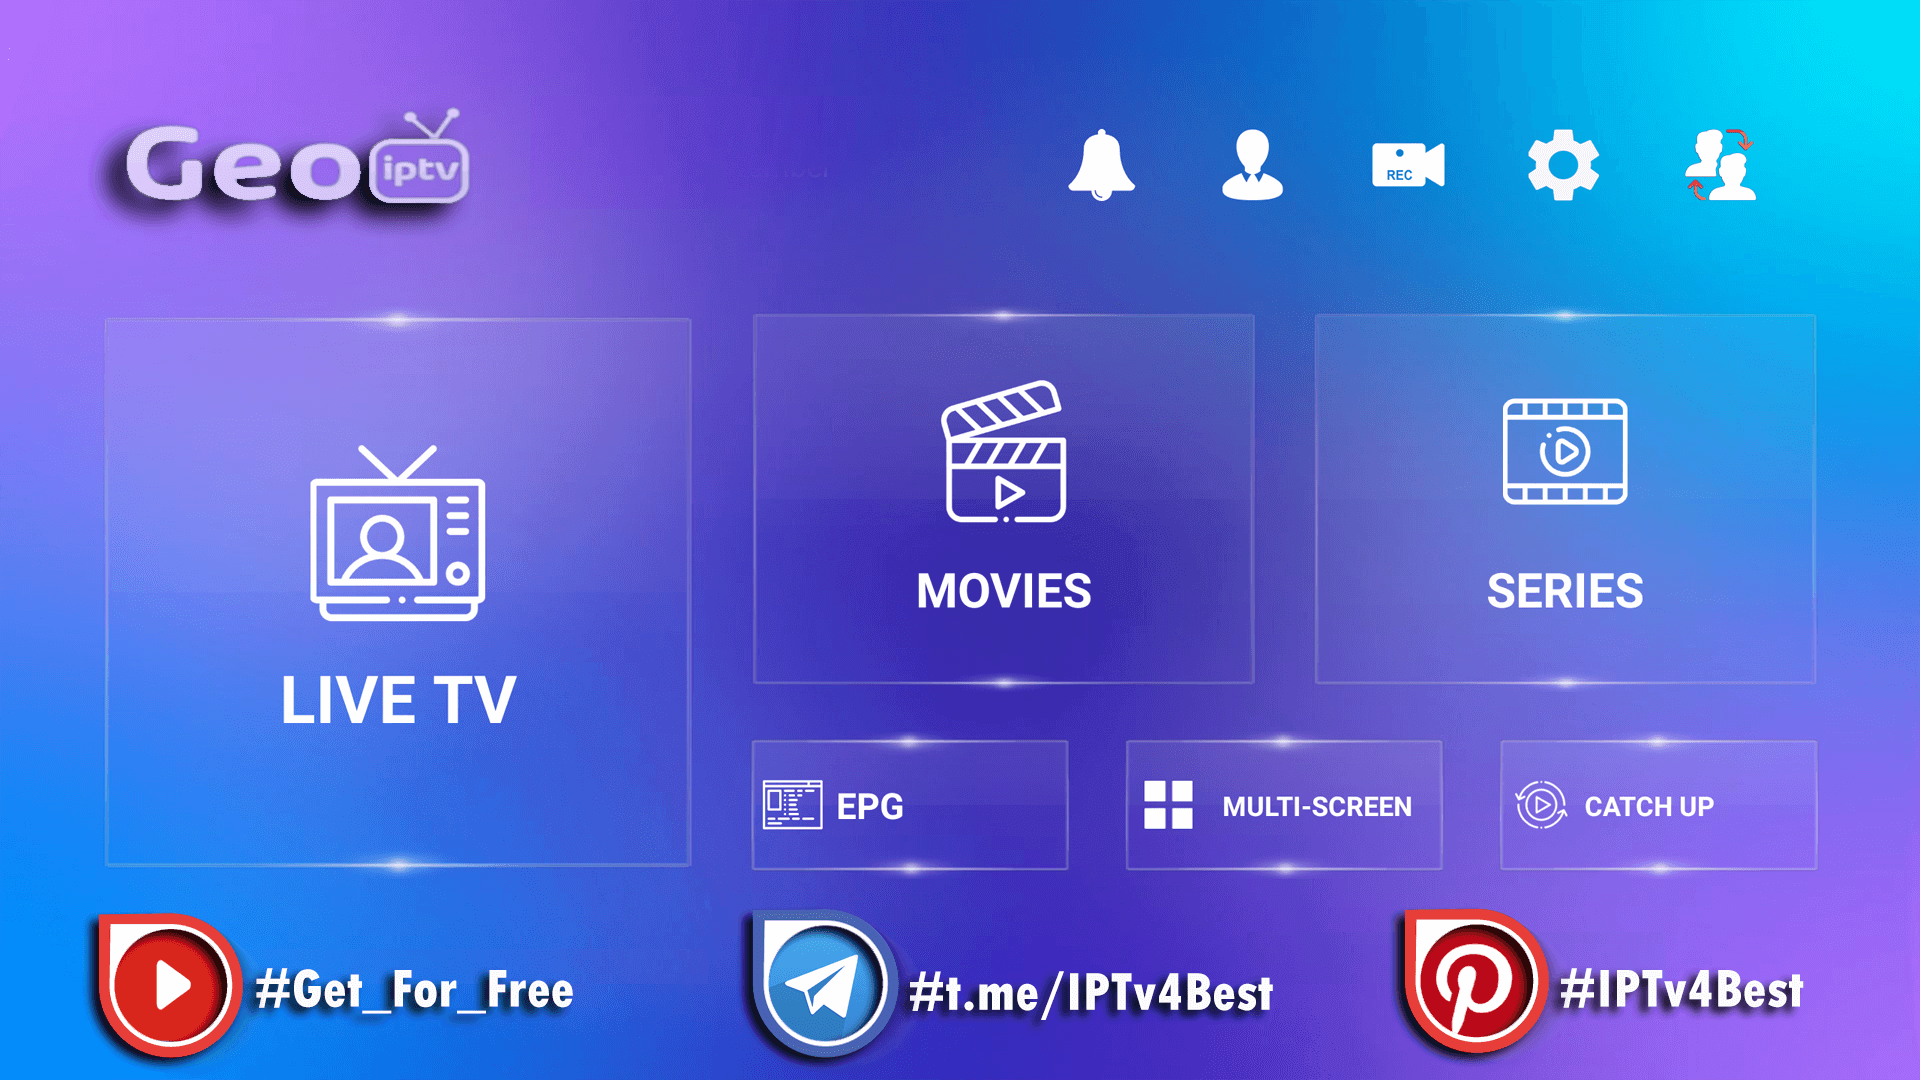 GGEO IPTV + Activation Login IPTV APK IPTV4BEST